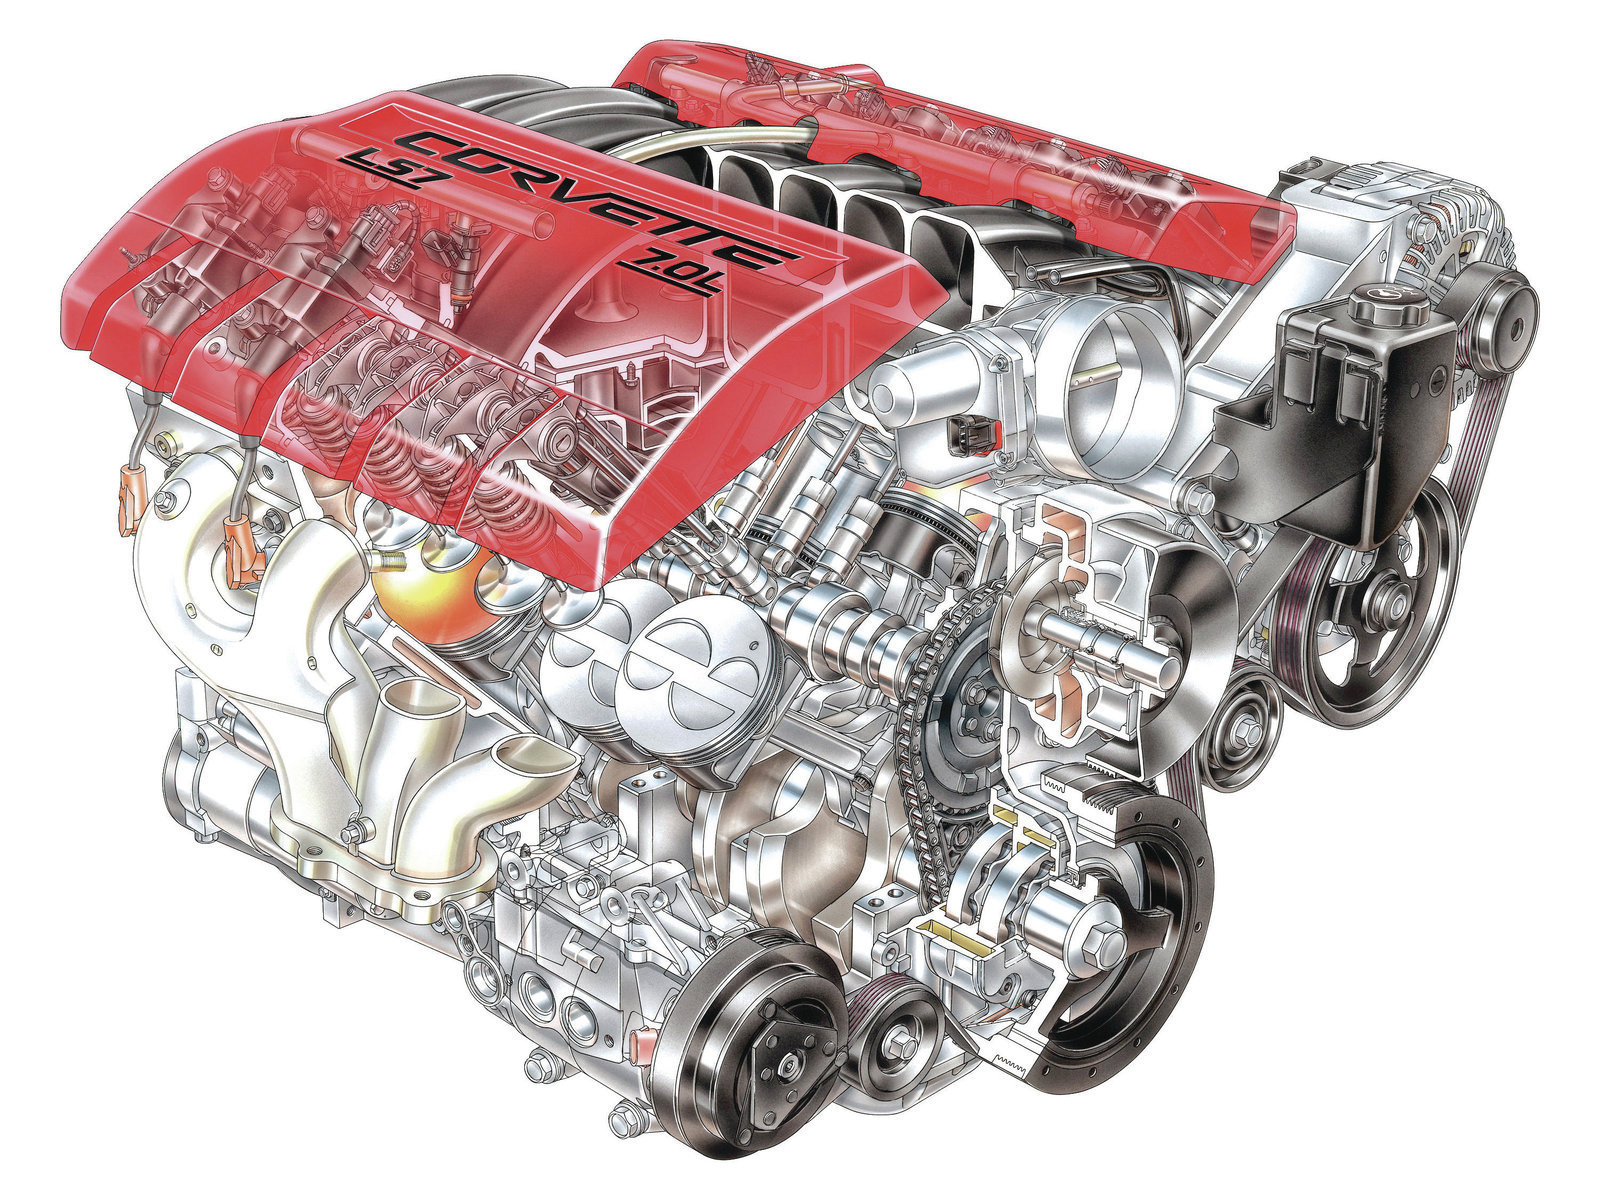 How To Identify All Those Different Late Model Gm V8 Engines Hot 2009 Silverado With Afm Engine Diagram 13 The 427ci 70l Ls7 Is Distinctive For Several Reasons Its Cylinder Heads Feature A Unique Intake Bolt Pattern And While Rocker Arms Are